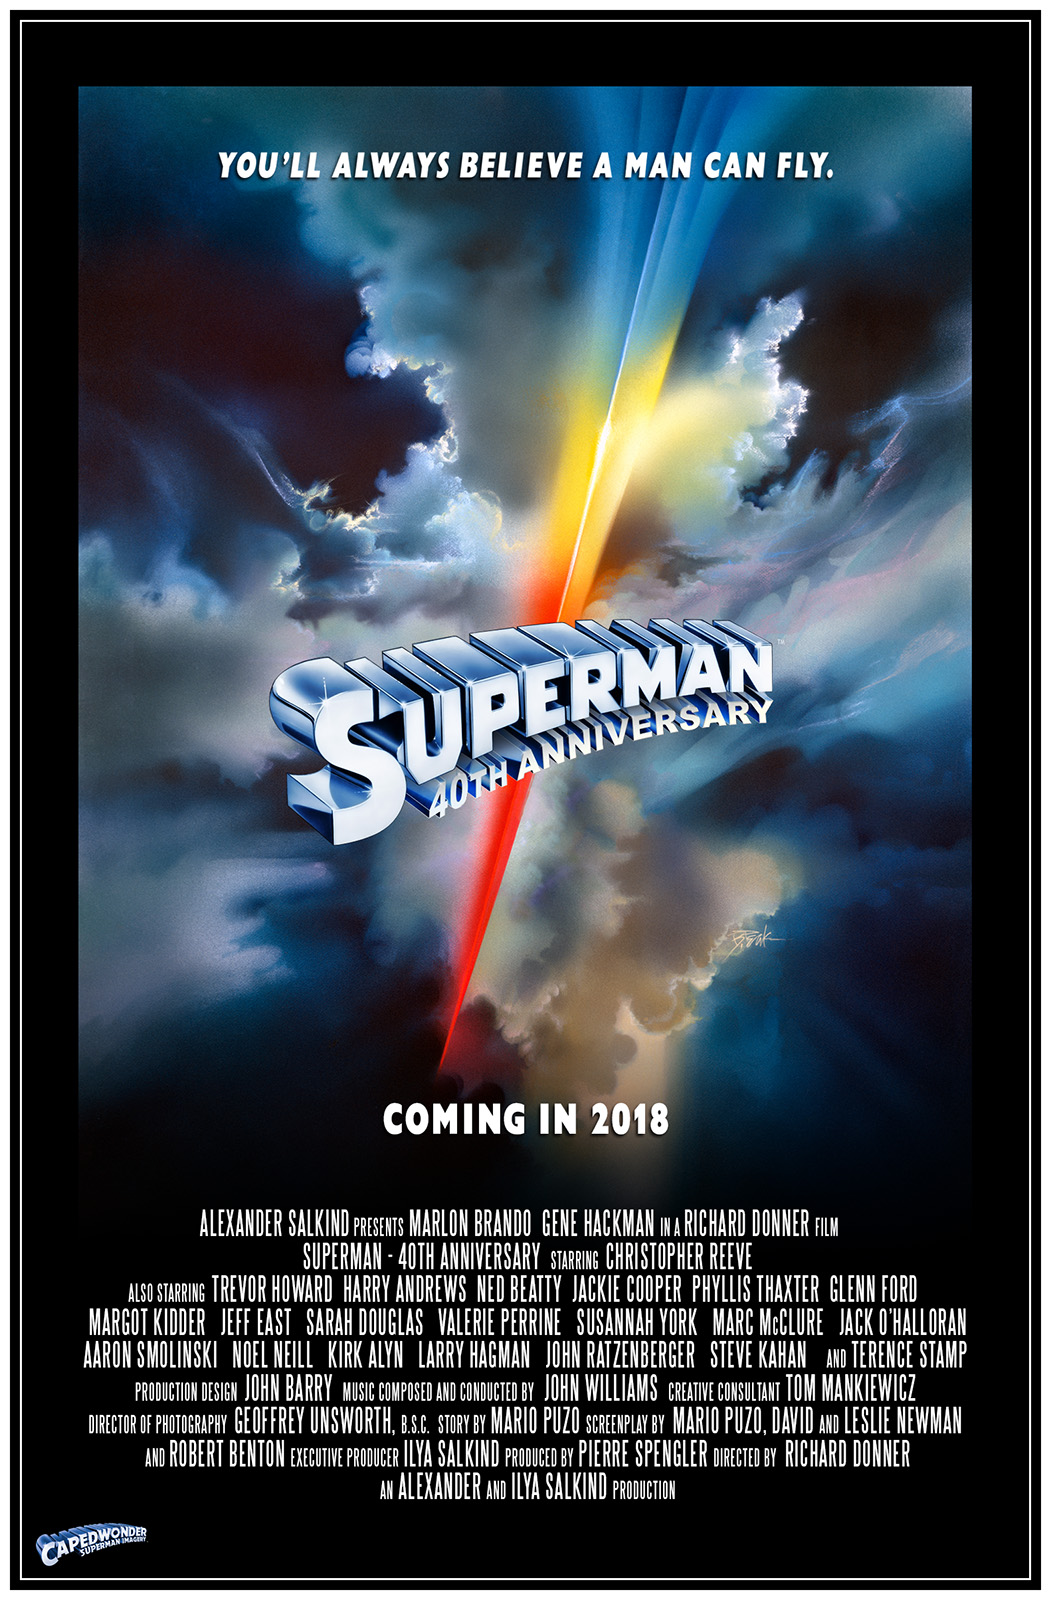 Superman-The Movie 40th Anniversary poster designed by Jim Bowers. Artwork by Bob Peak.